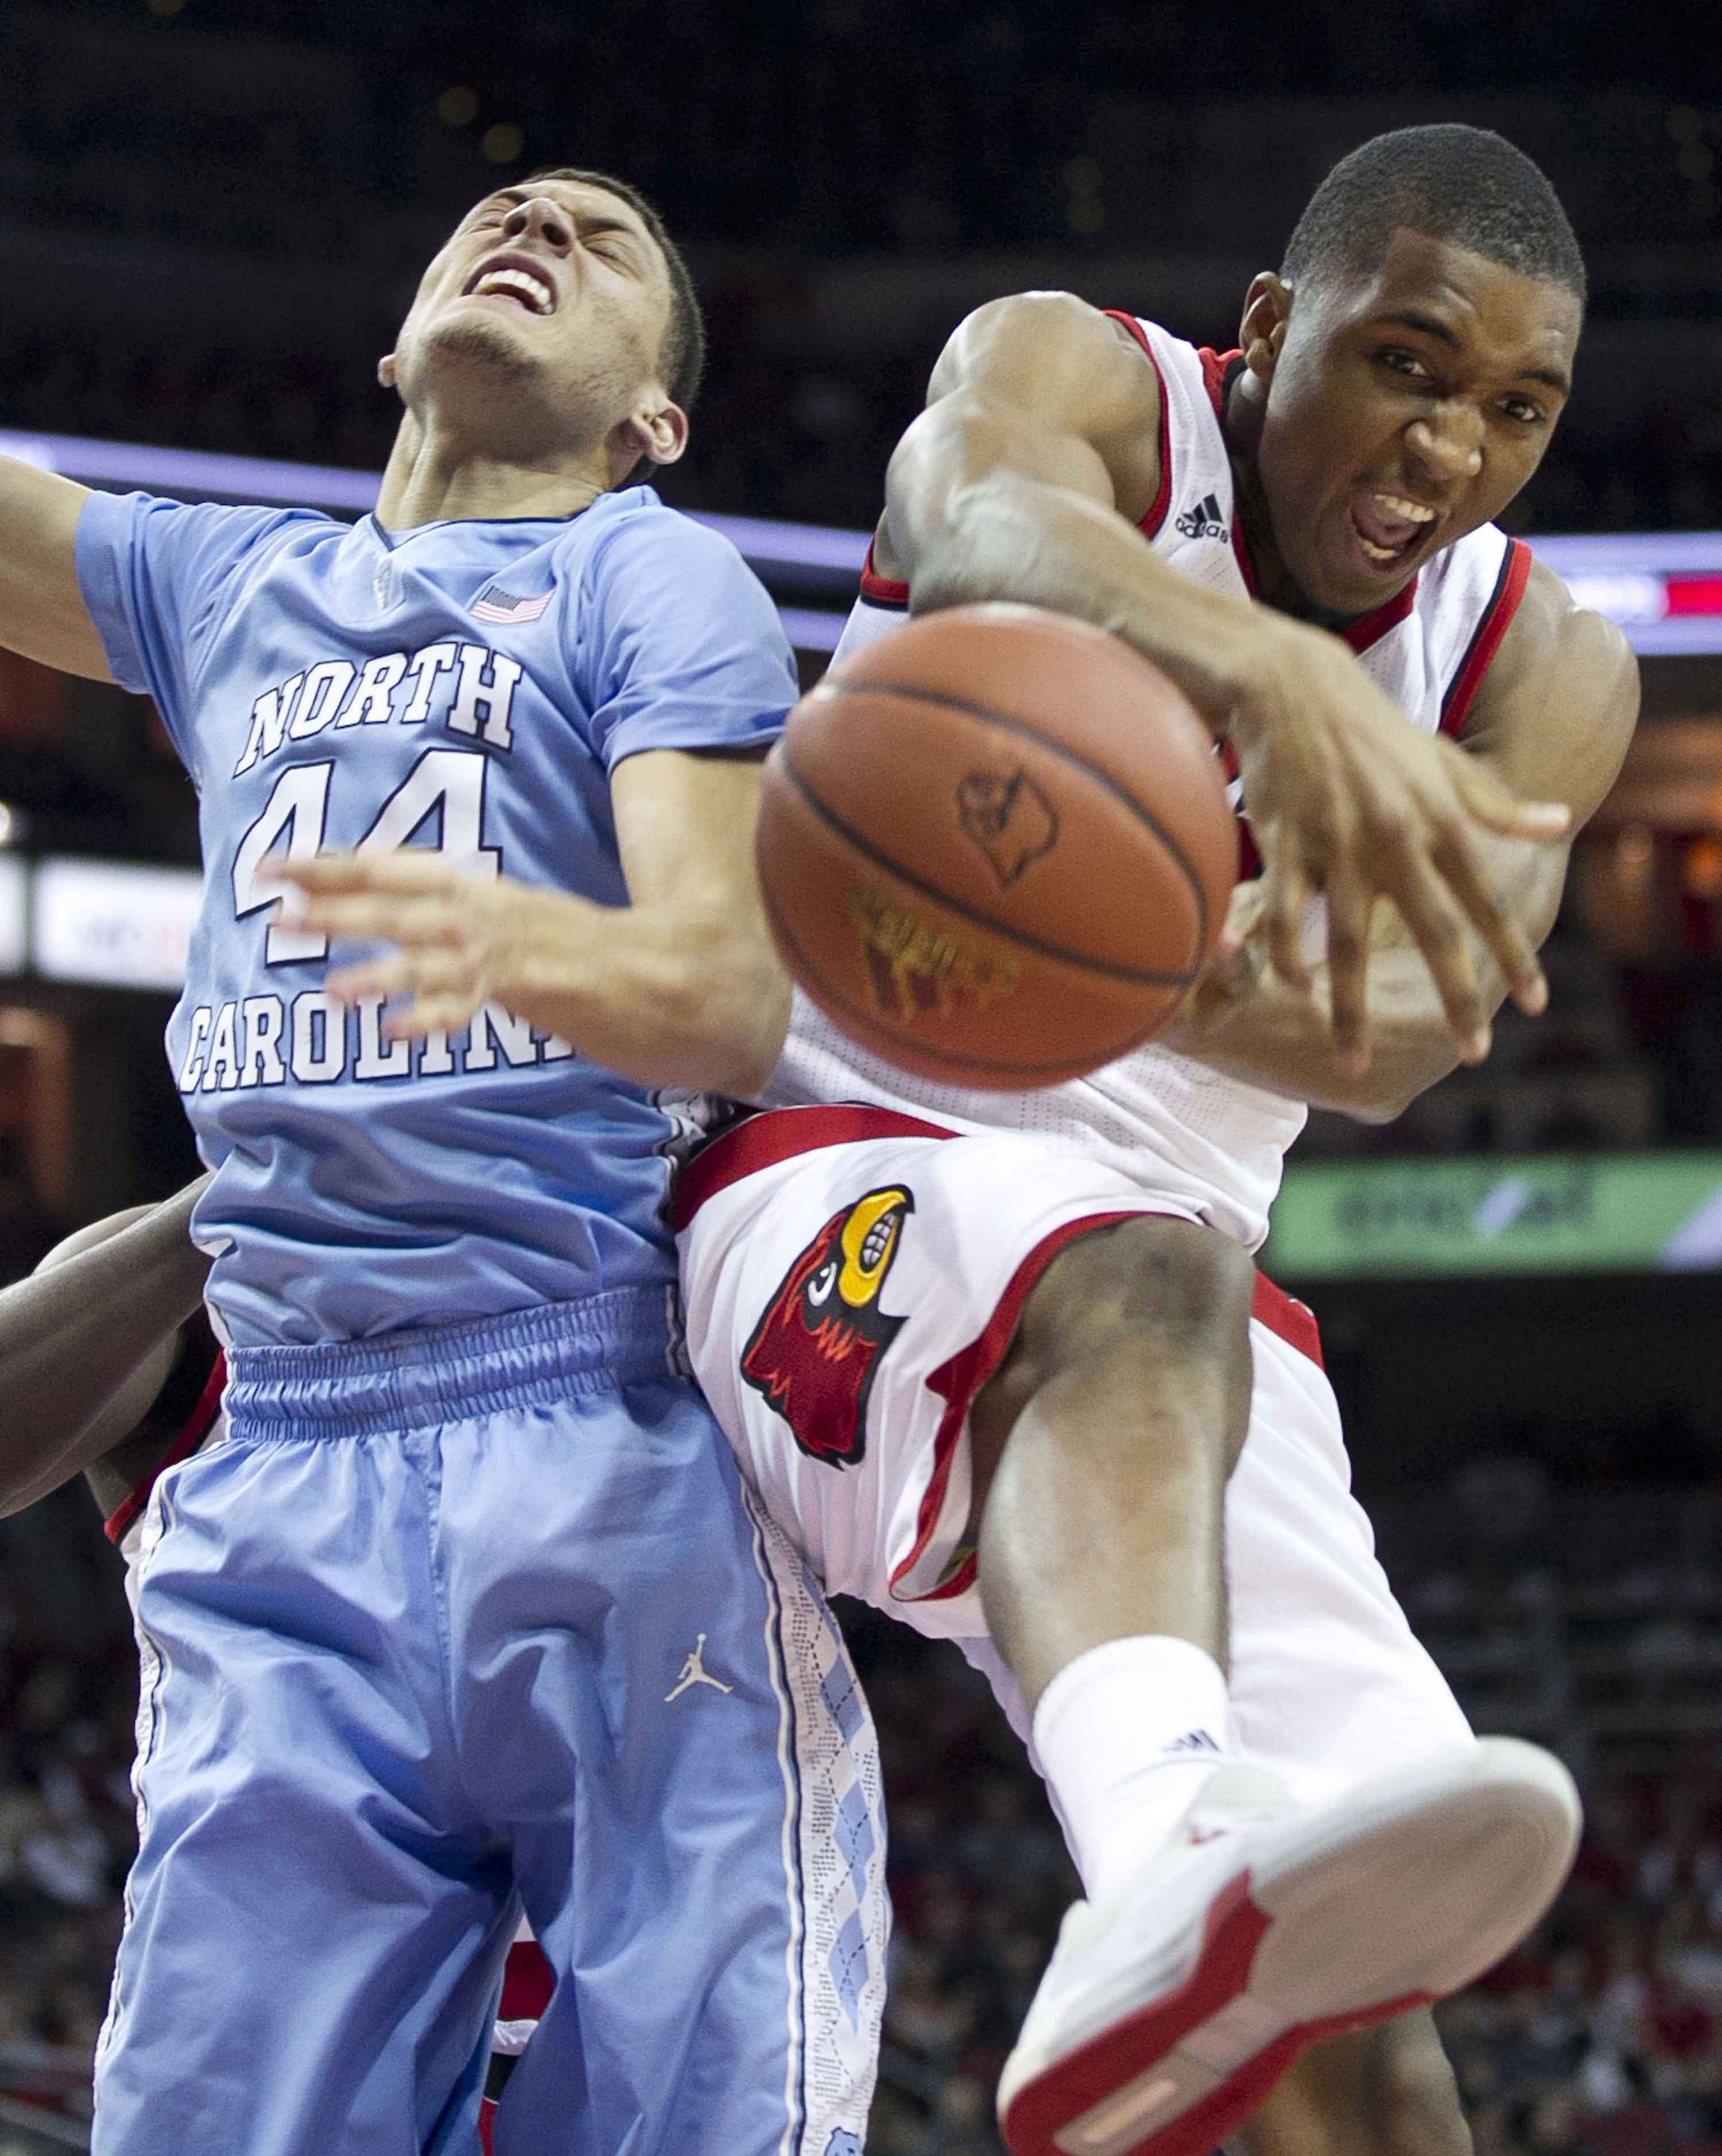 Louisville's Donovan Mitchell (45) secures a defensive rebound from North Carolina's Justin Jackson (44) during the second half on Monday, Feb. 1, 2016, at the KFC Yum! Center in Louisville, Ky. (Robert Willett/Raleigh News & Observer/TNS)